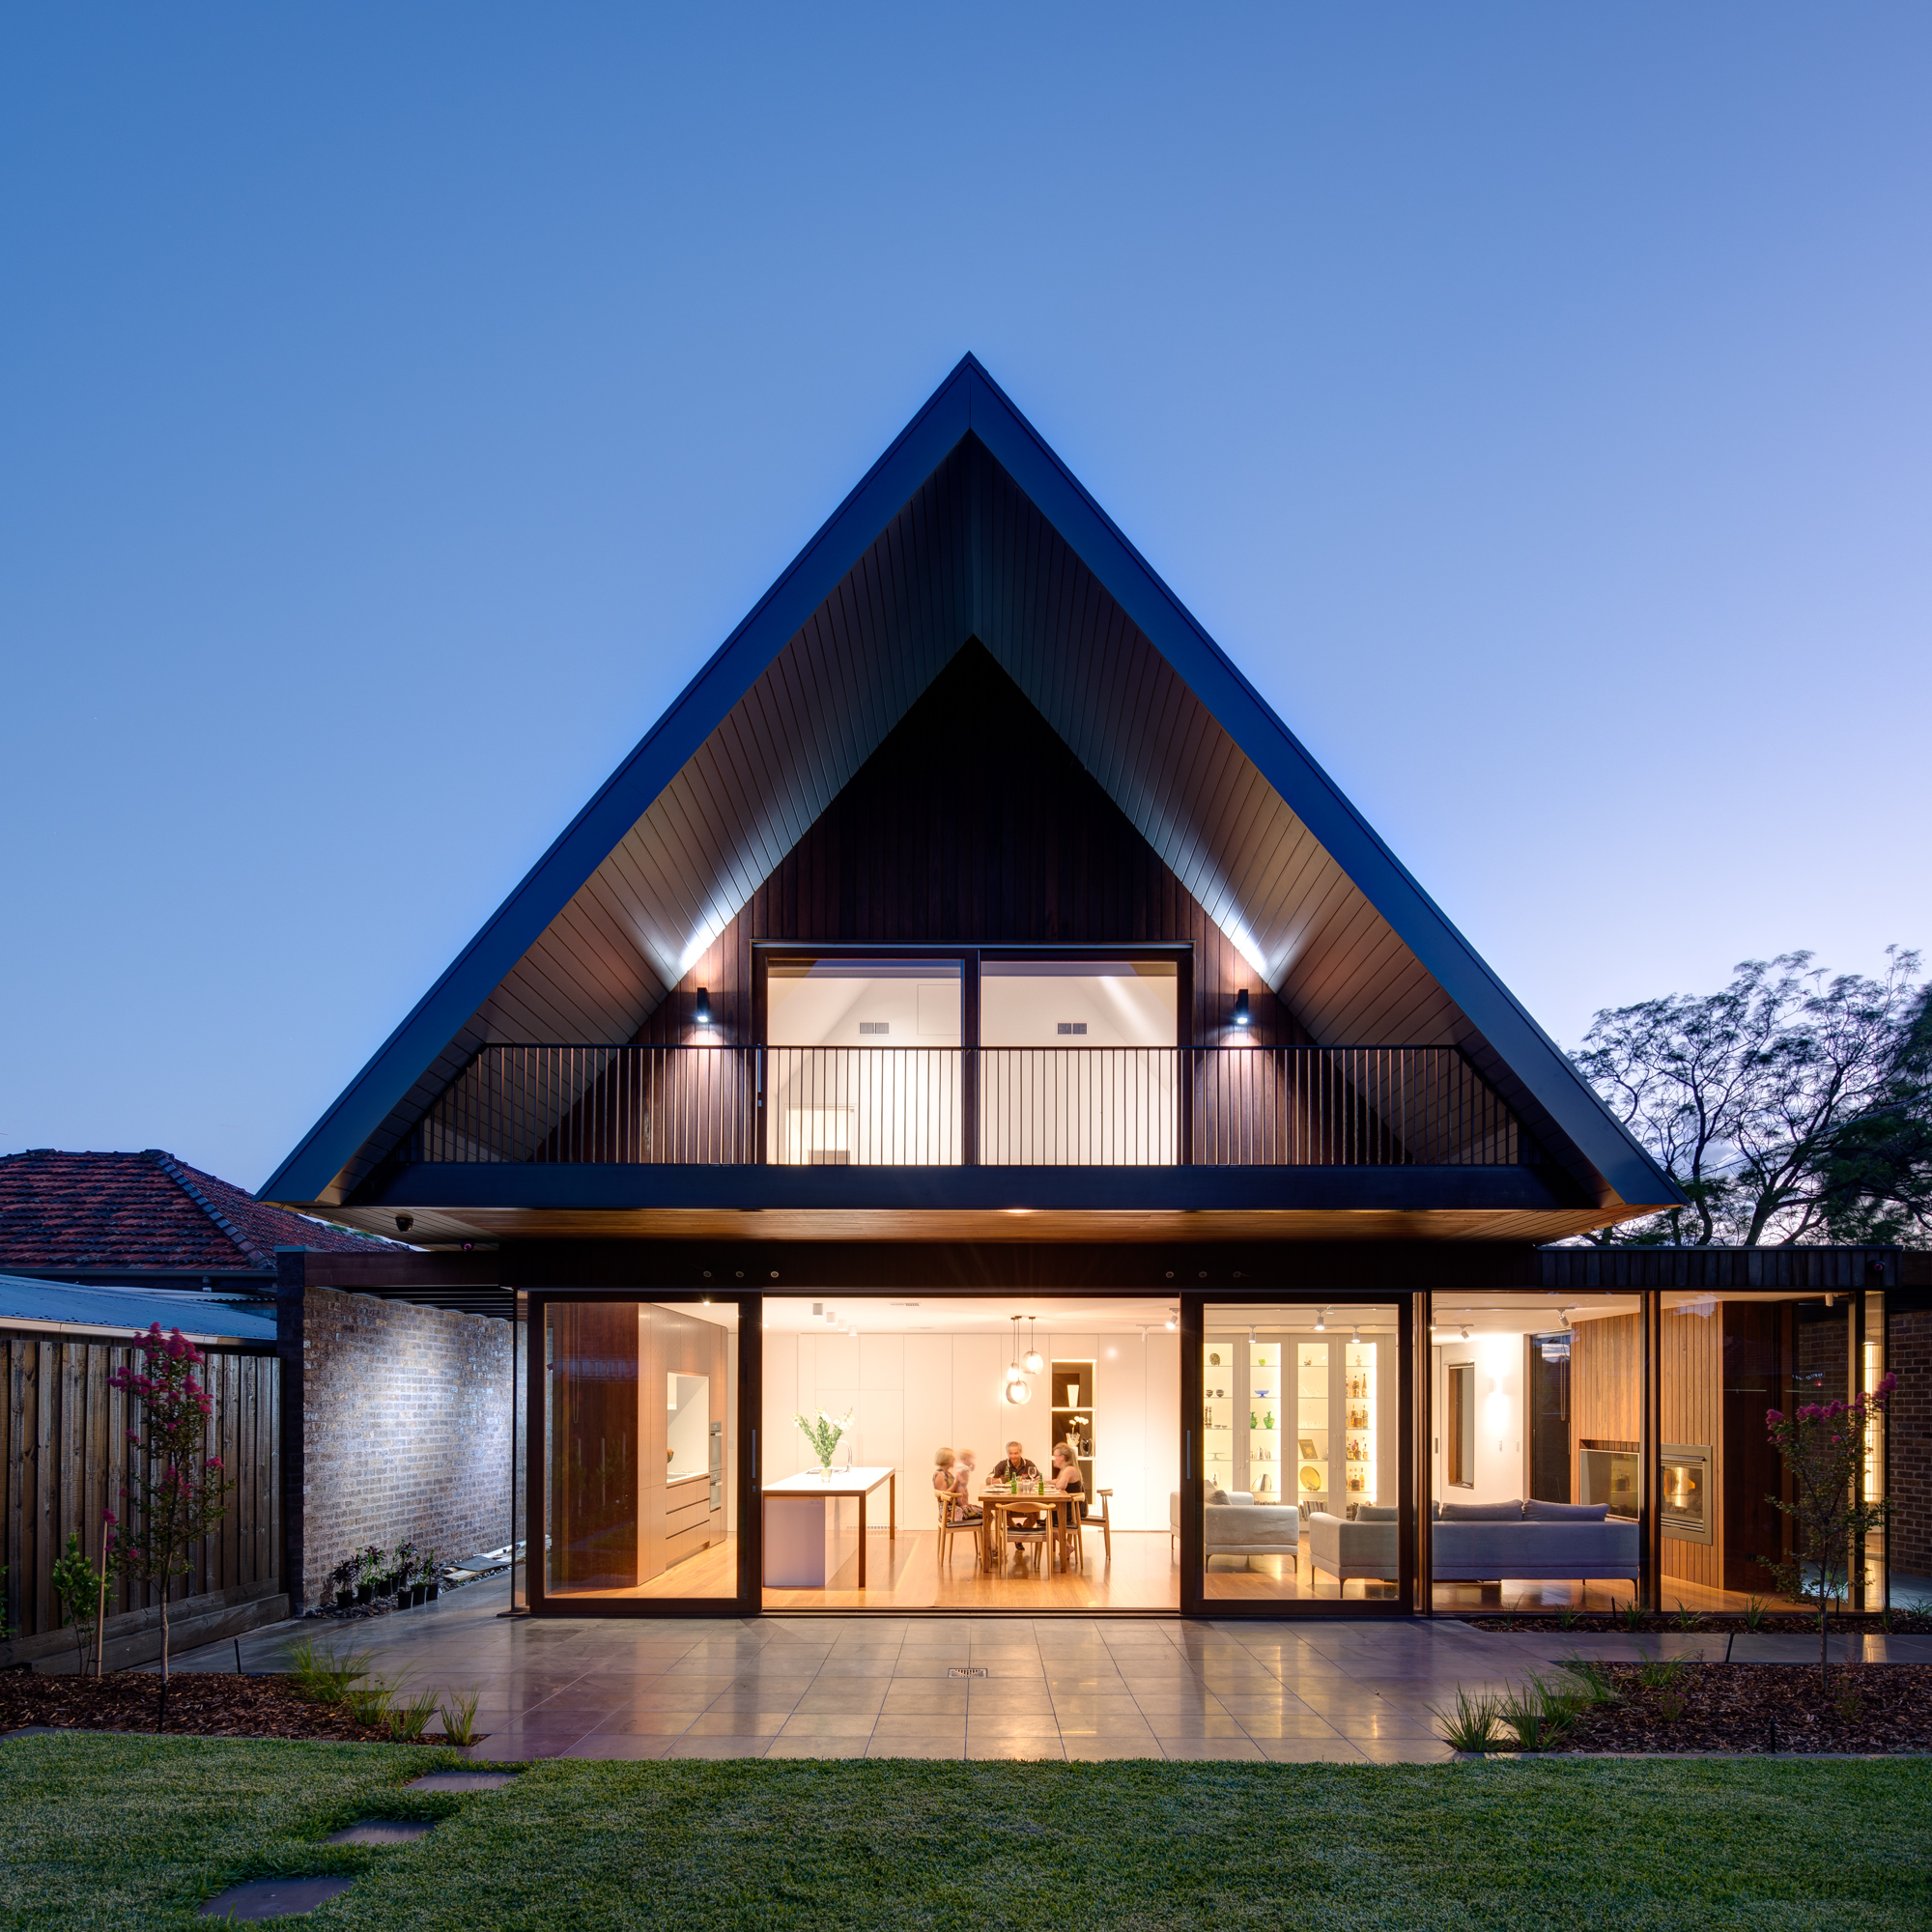 Ford Street House by Chaulk.